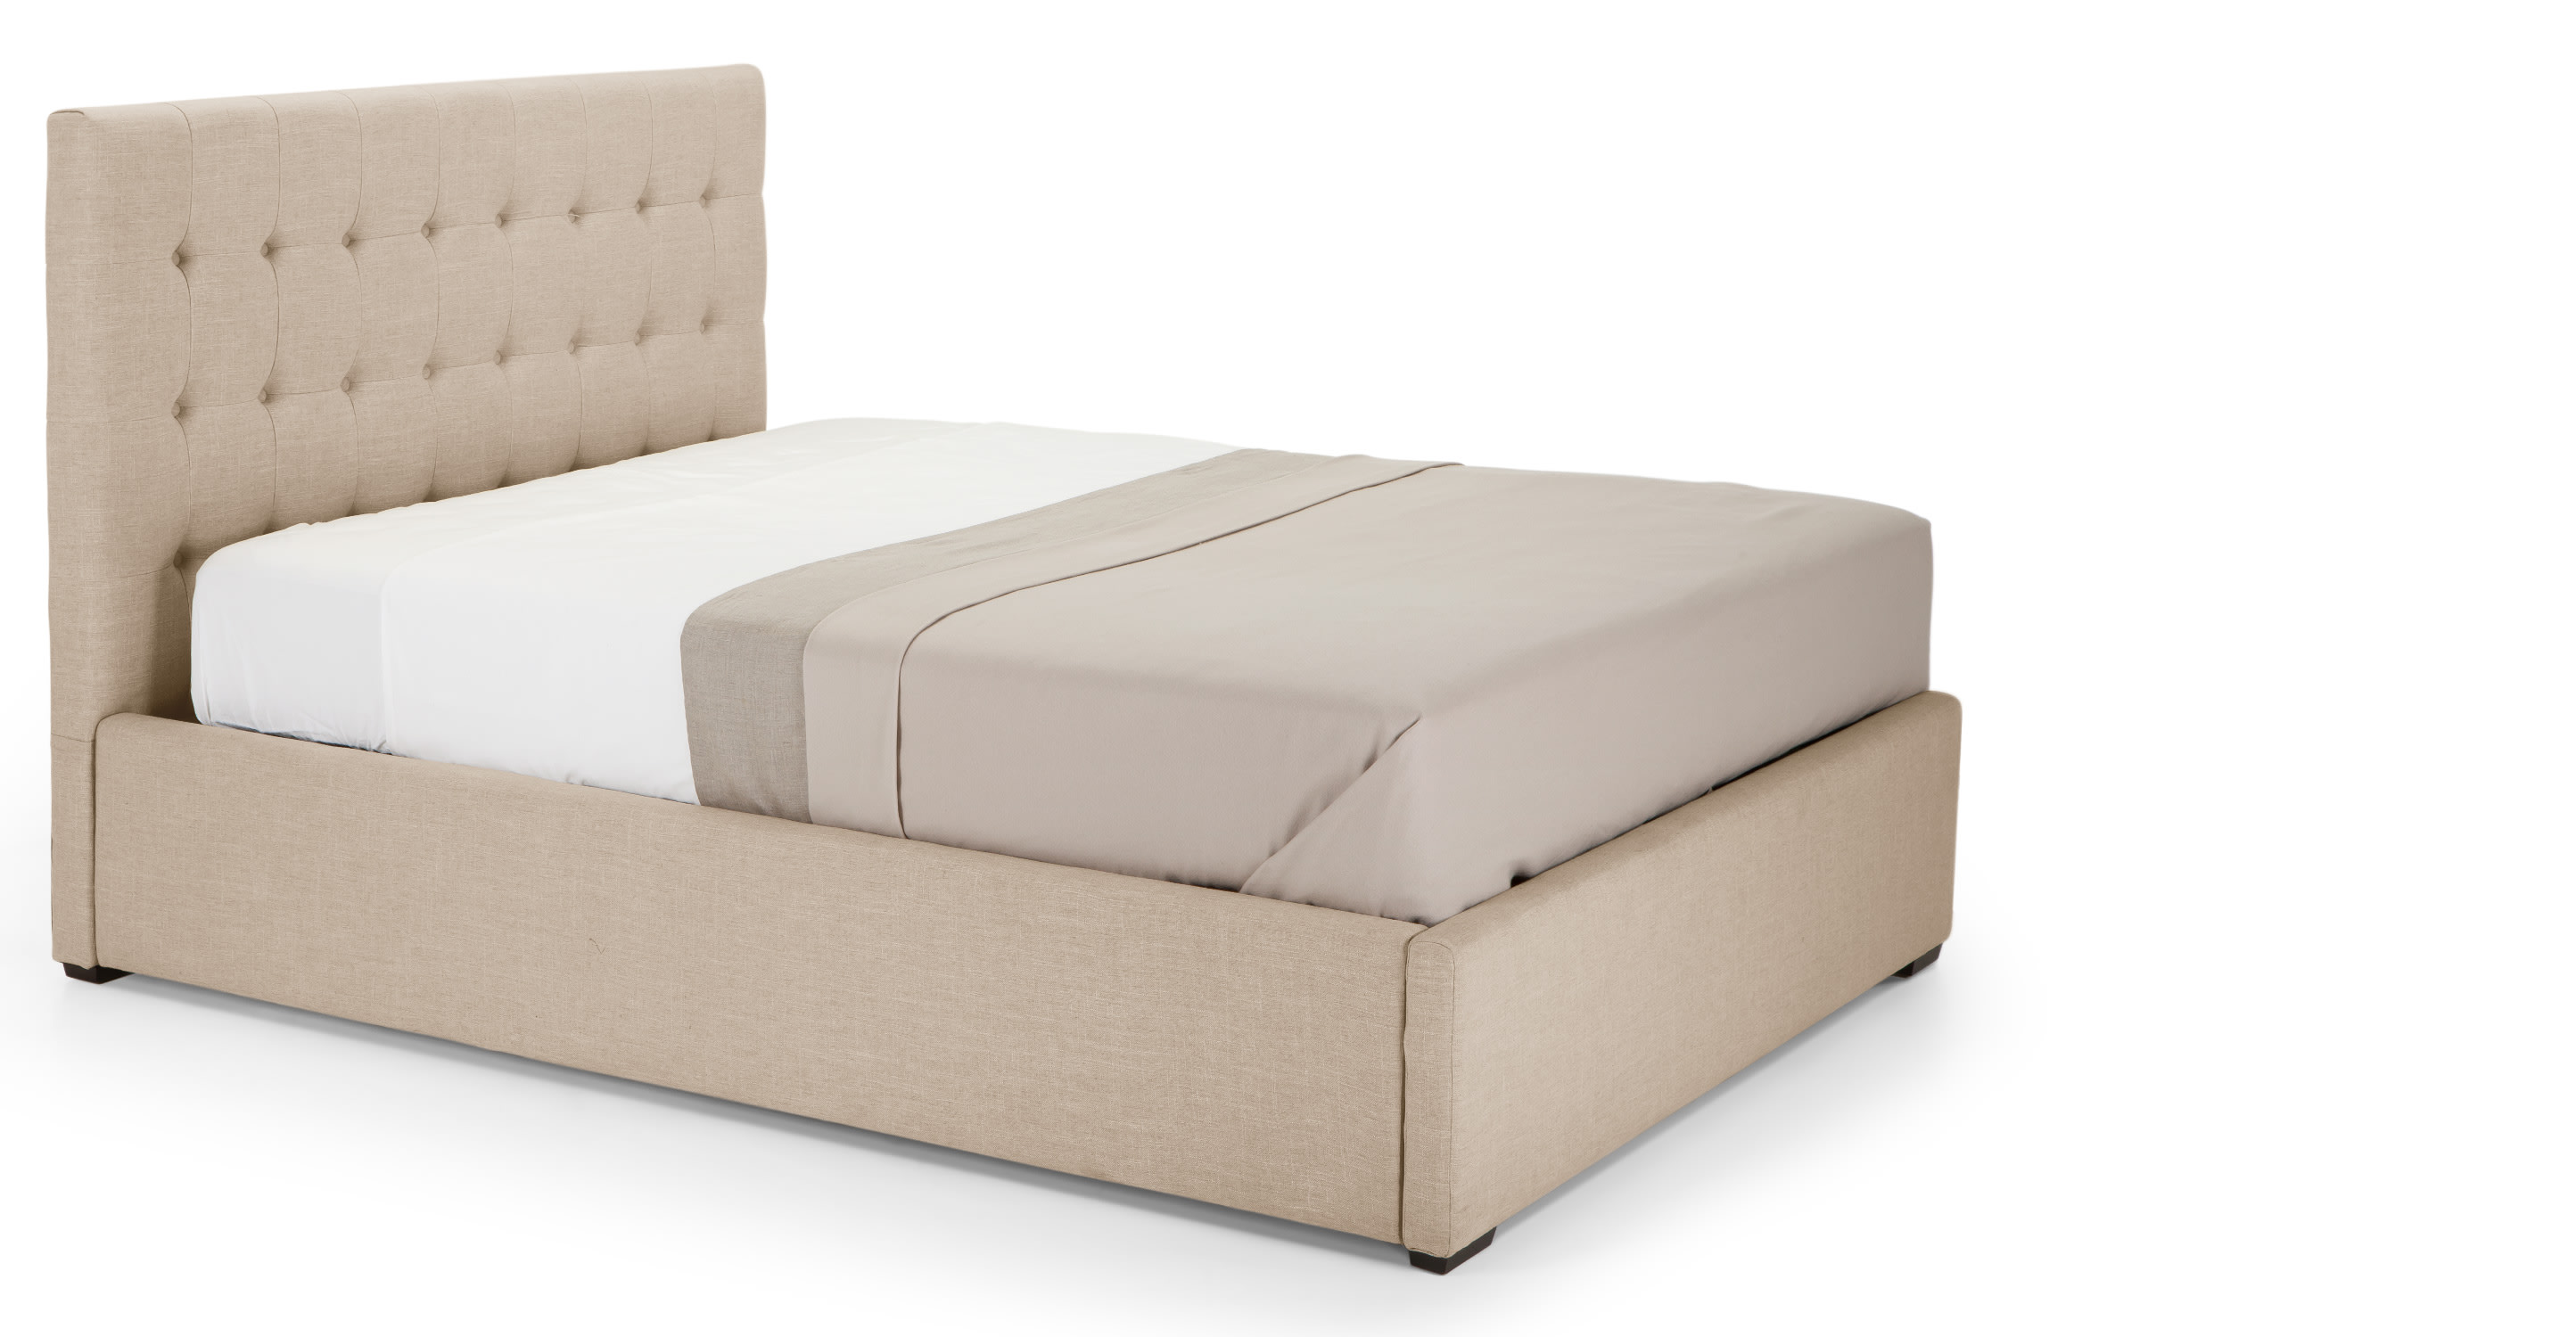 finlay un lit double 140 cm x 200 cm et rangement beige. Black Bedroom Furniture Sets. Home Design Ideas